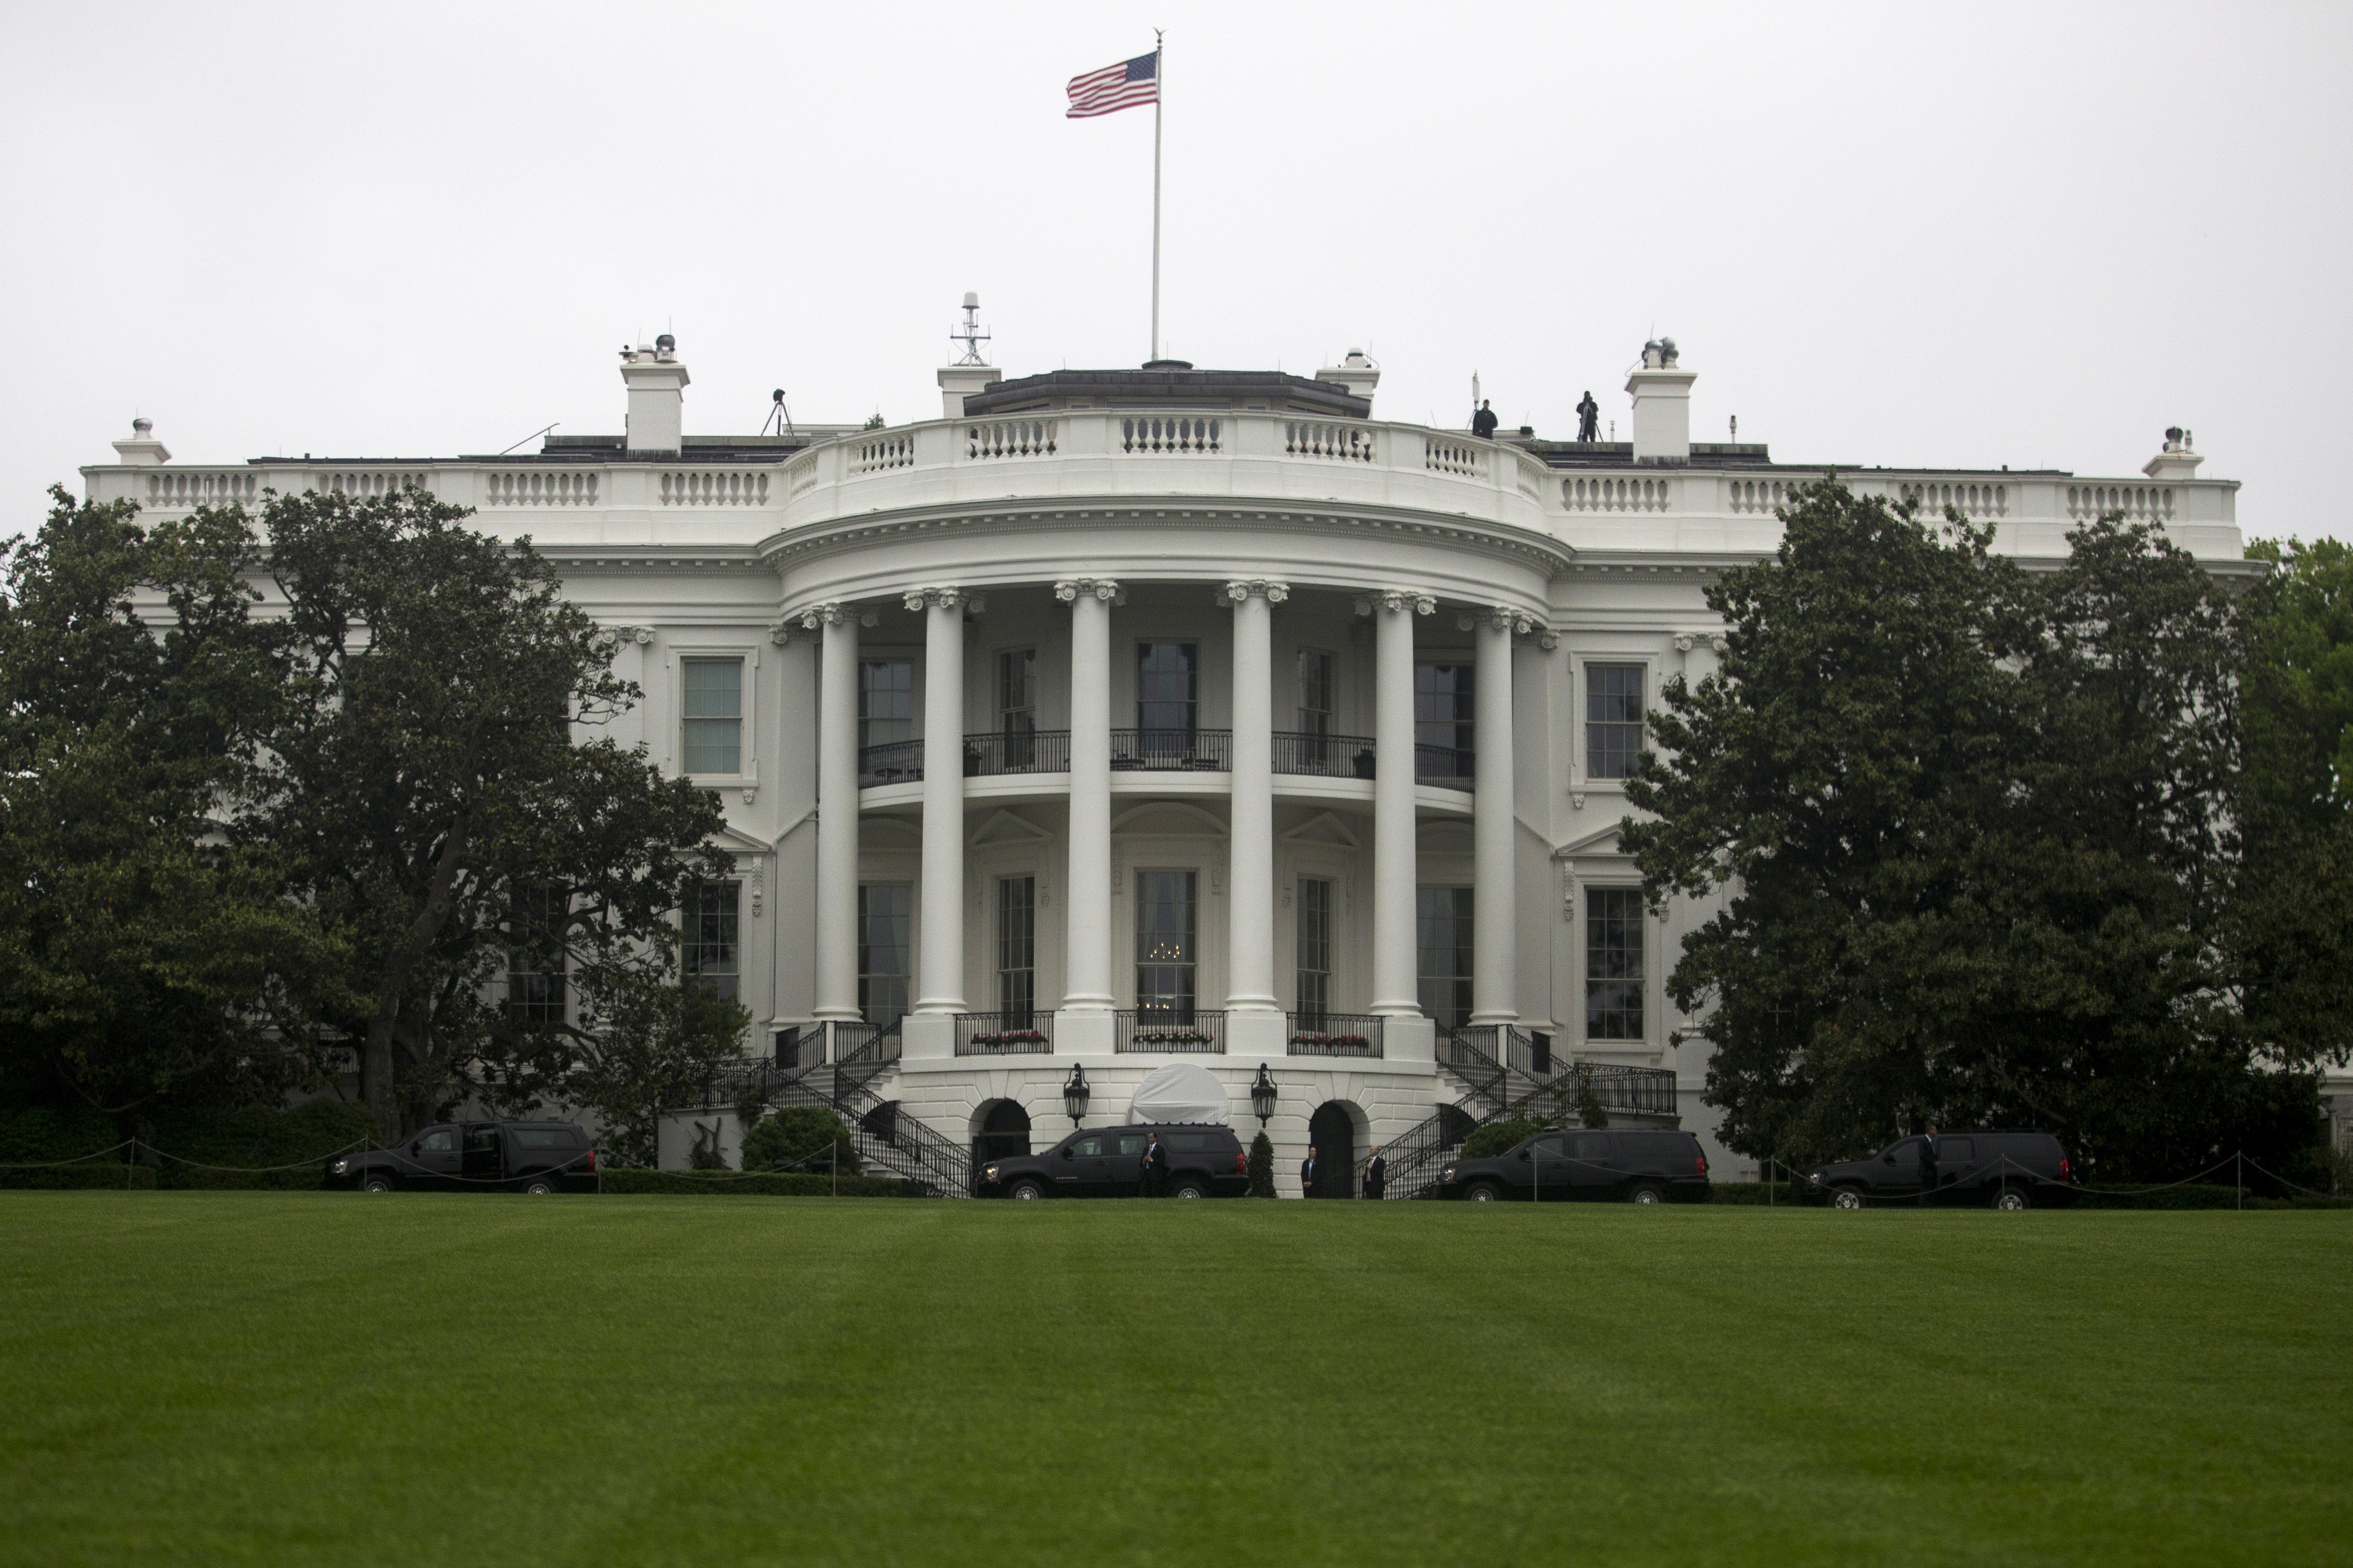 White House says more than half of its staffers are women